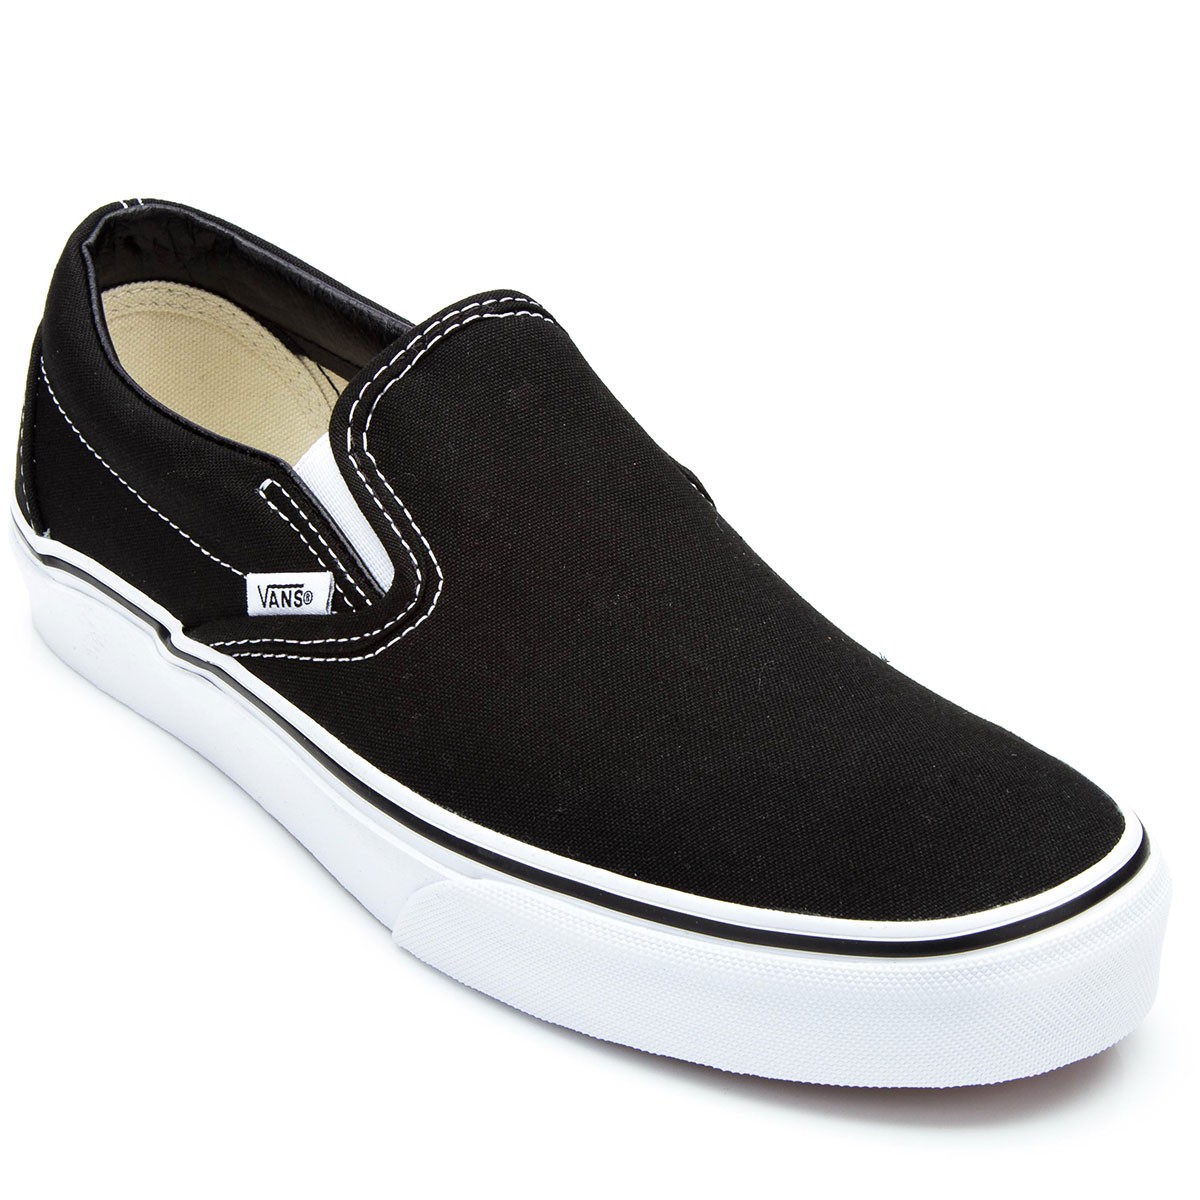 vans classic slip on youth shoes